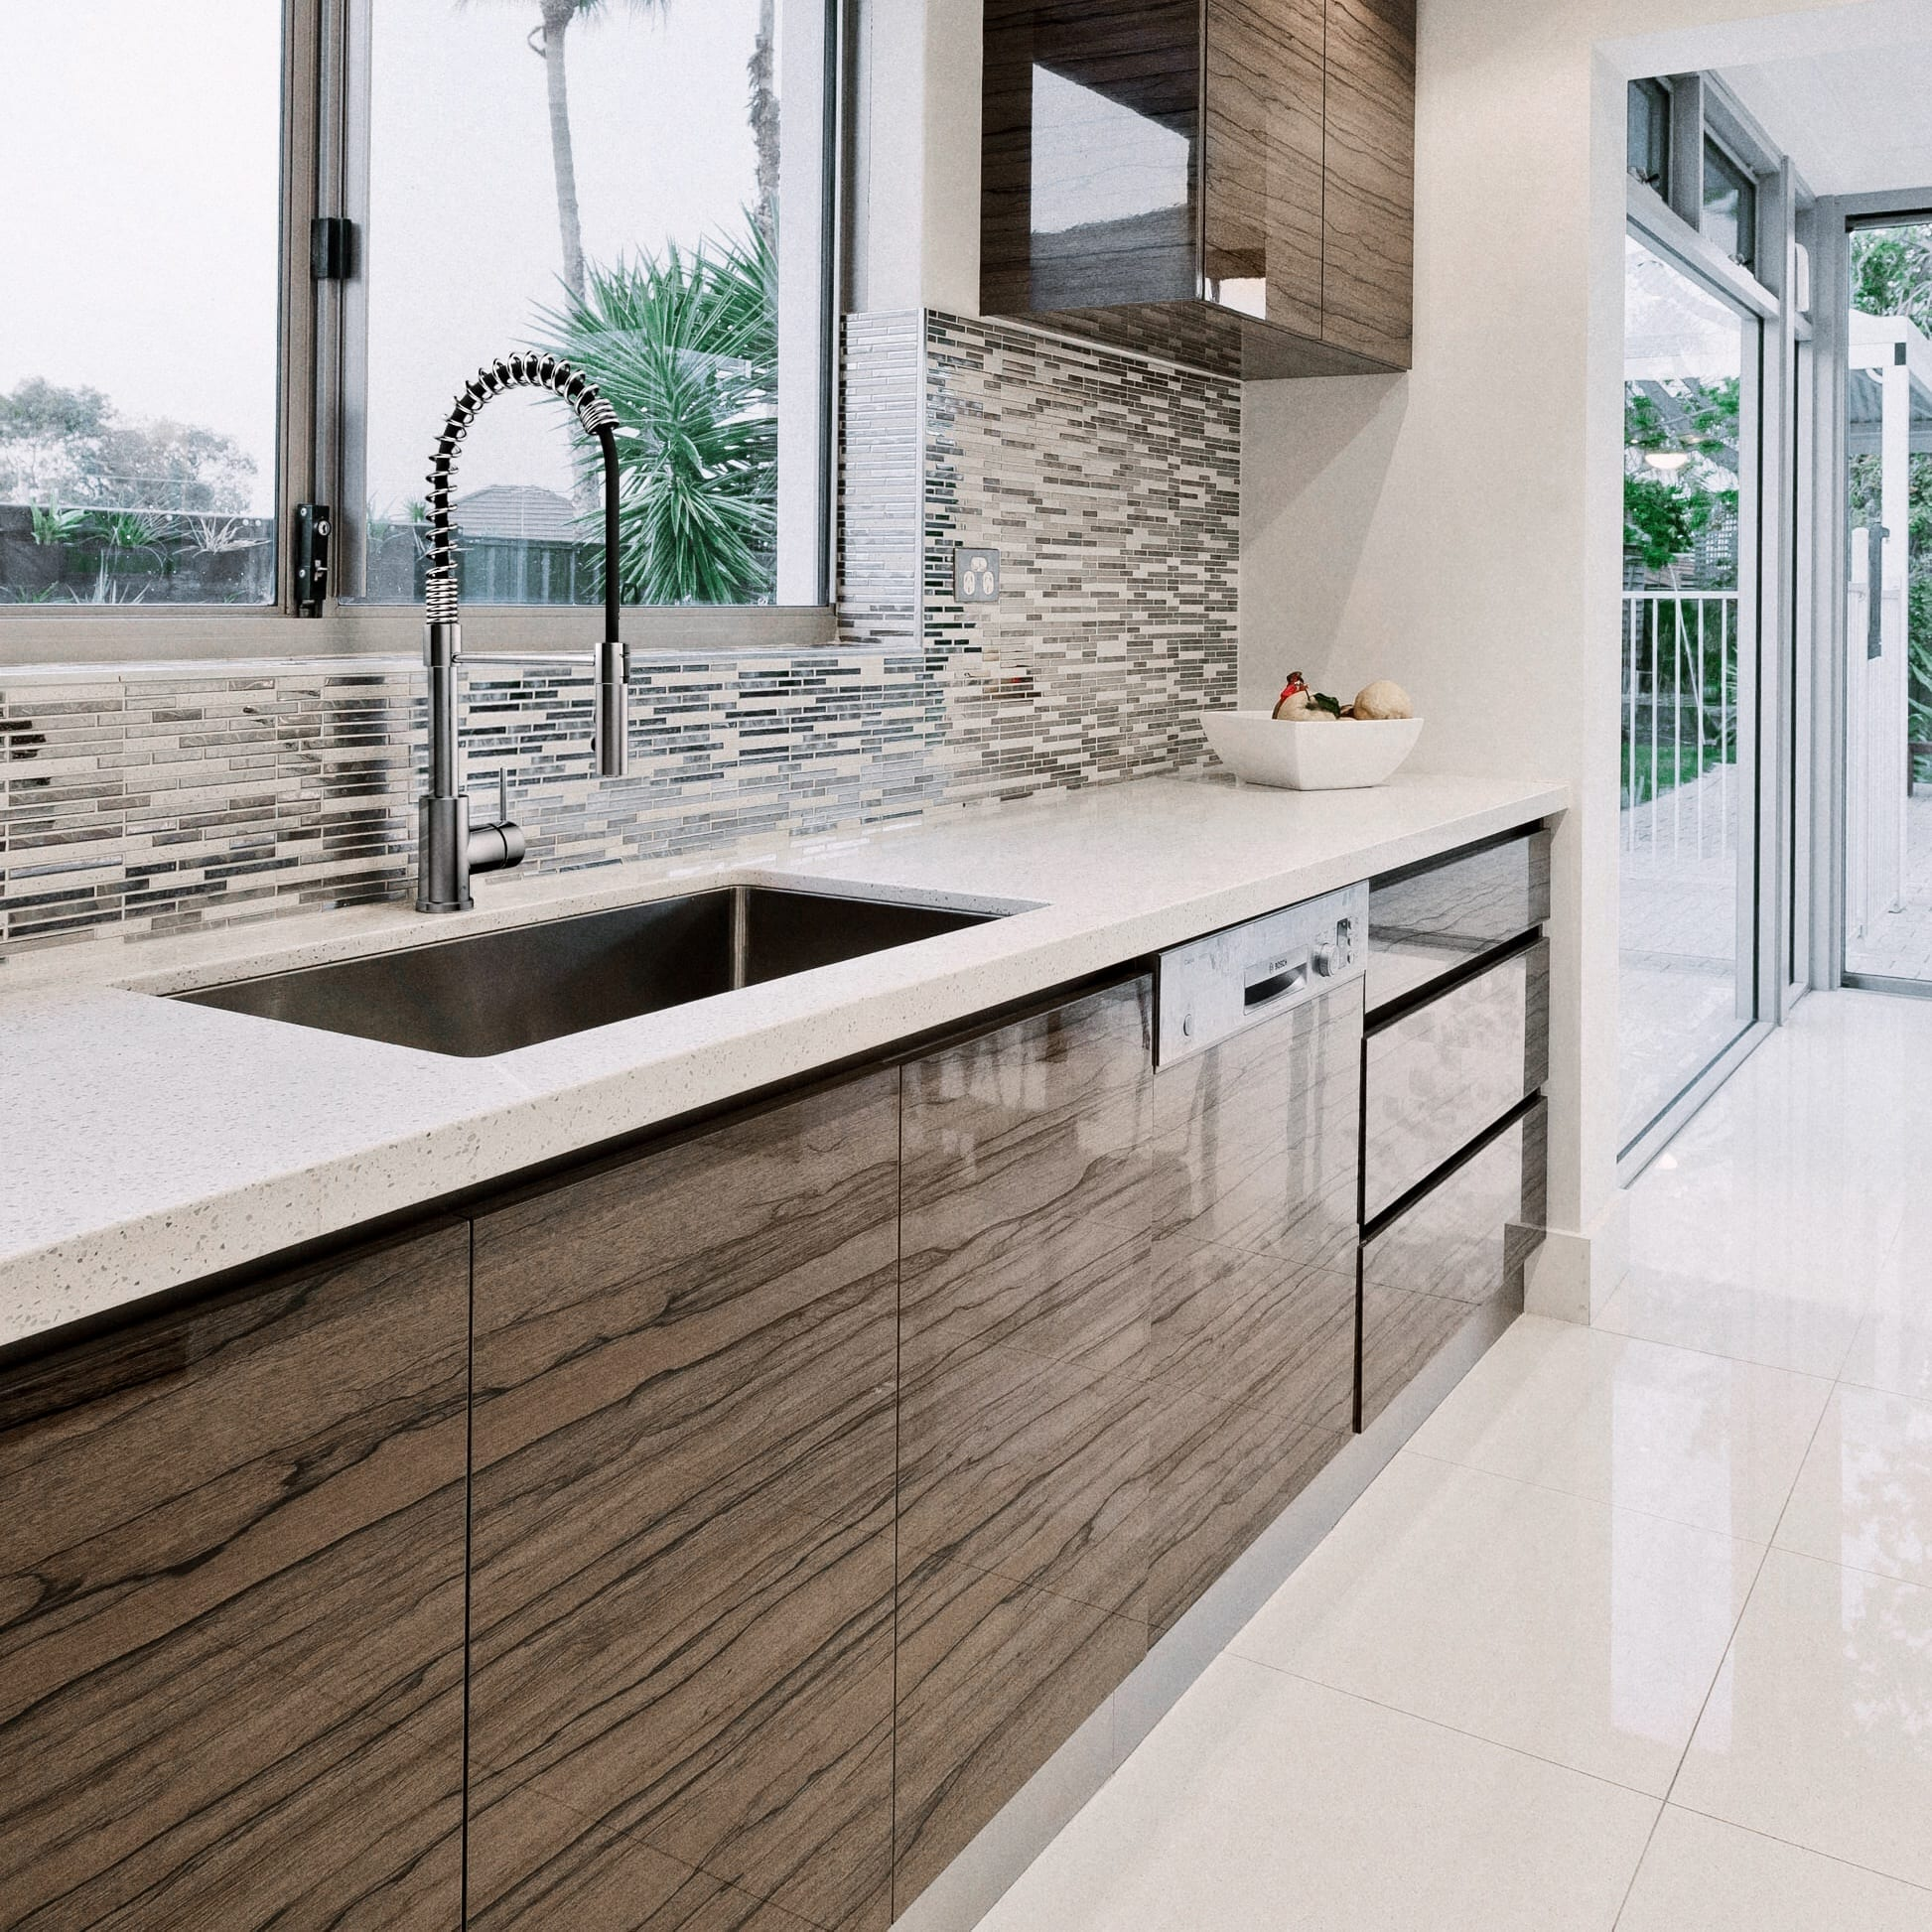 gallery sink standard depot bone american bathroom lowes and kohler gerber colors faucet faucets sinks colored kitchen home